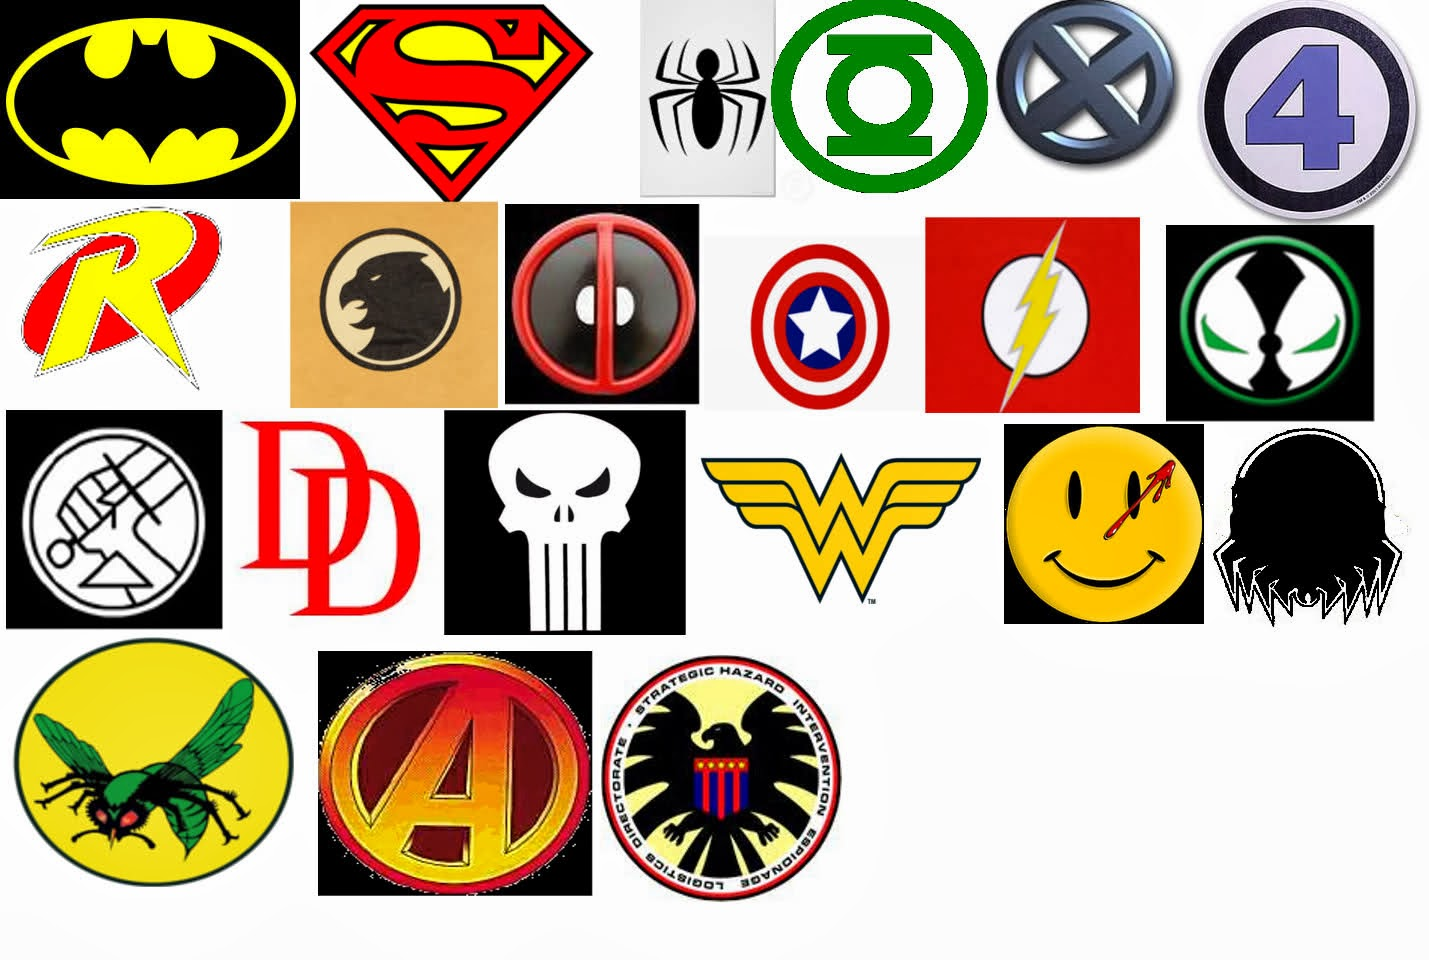 photograph relating to Free Printable Superhero Logos named Righteous Judgment: Superhero Birthday Occasion free of charge printables